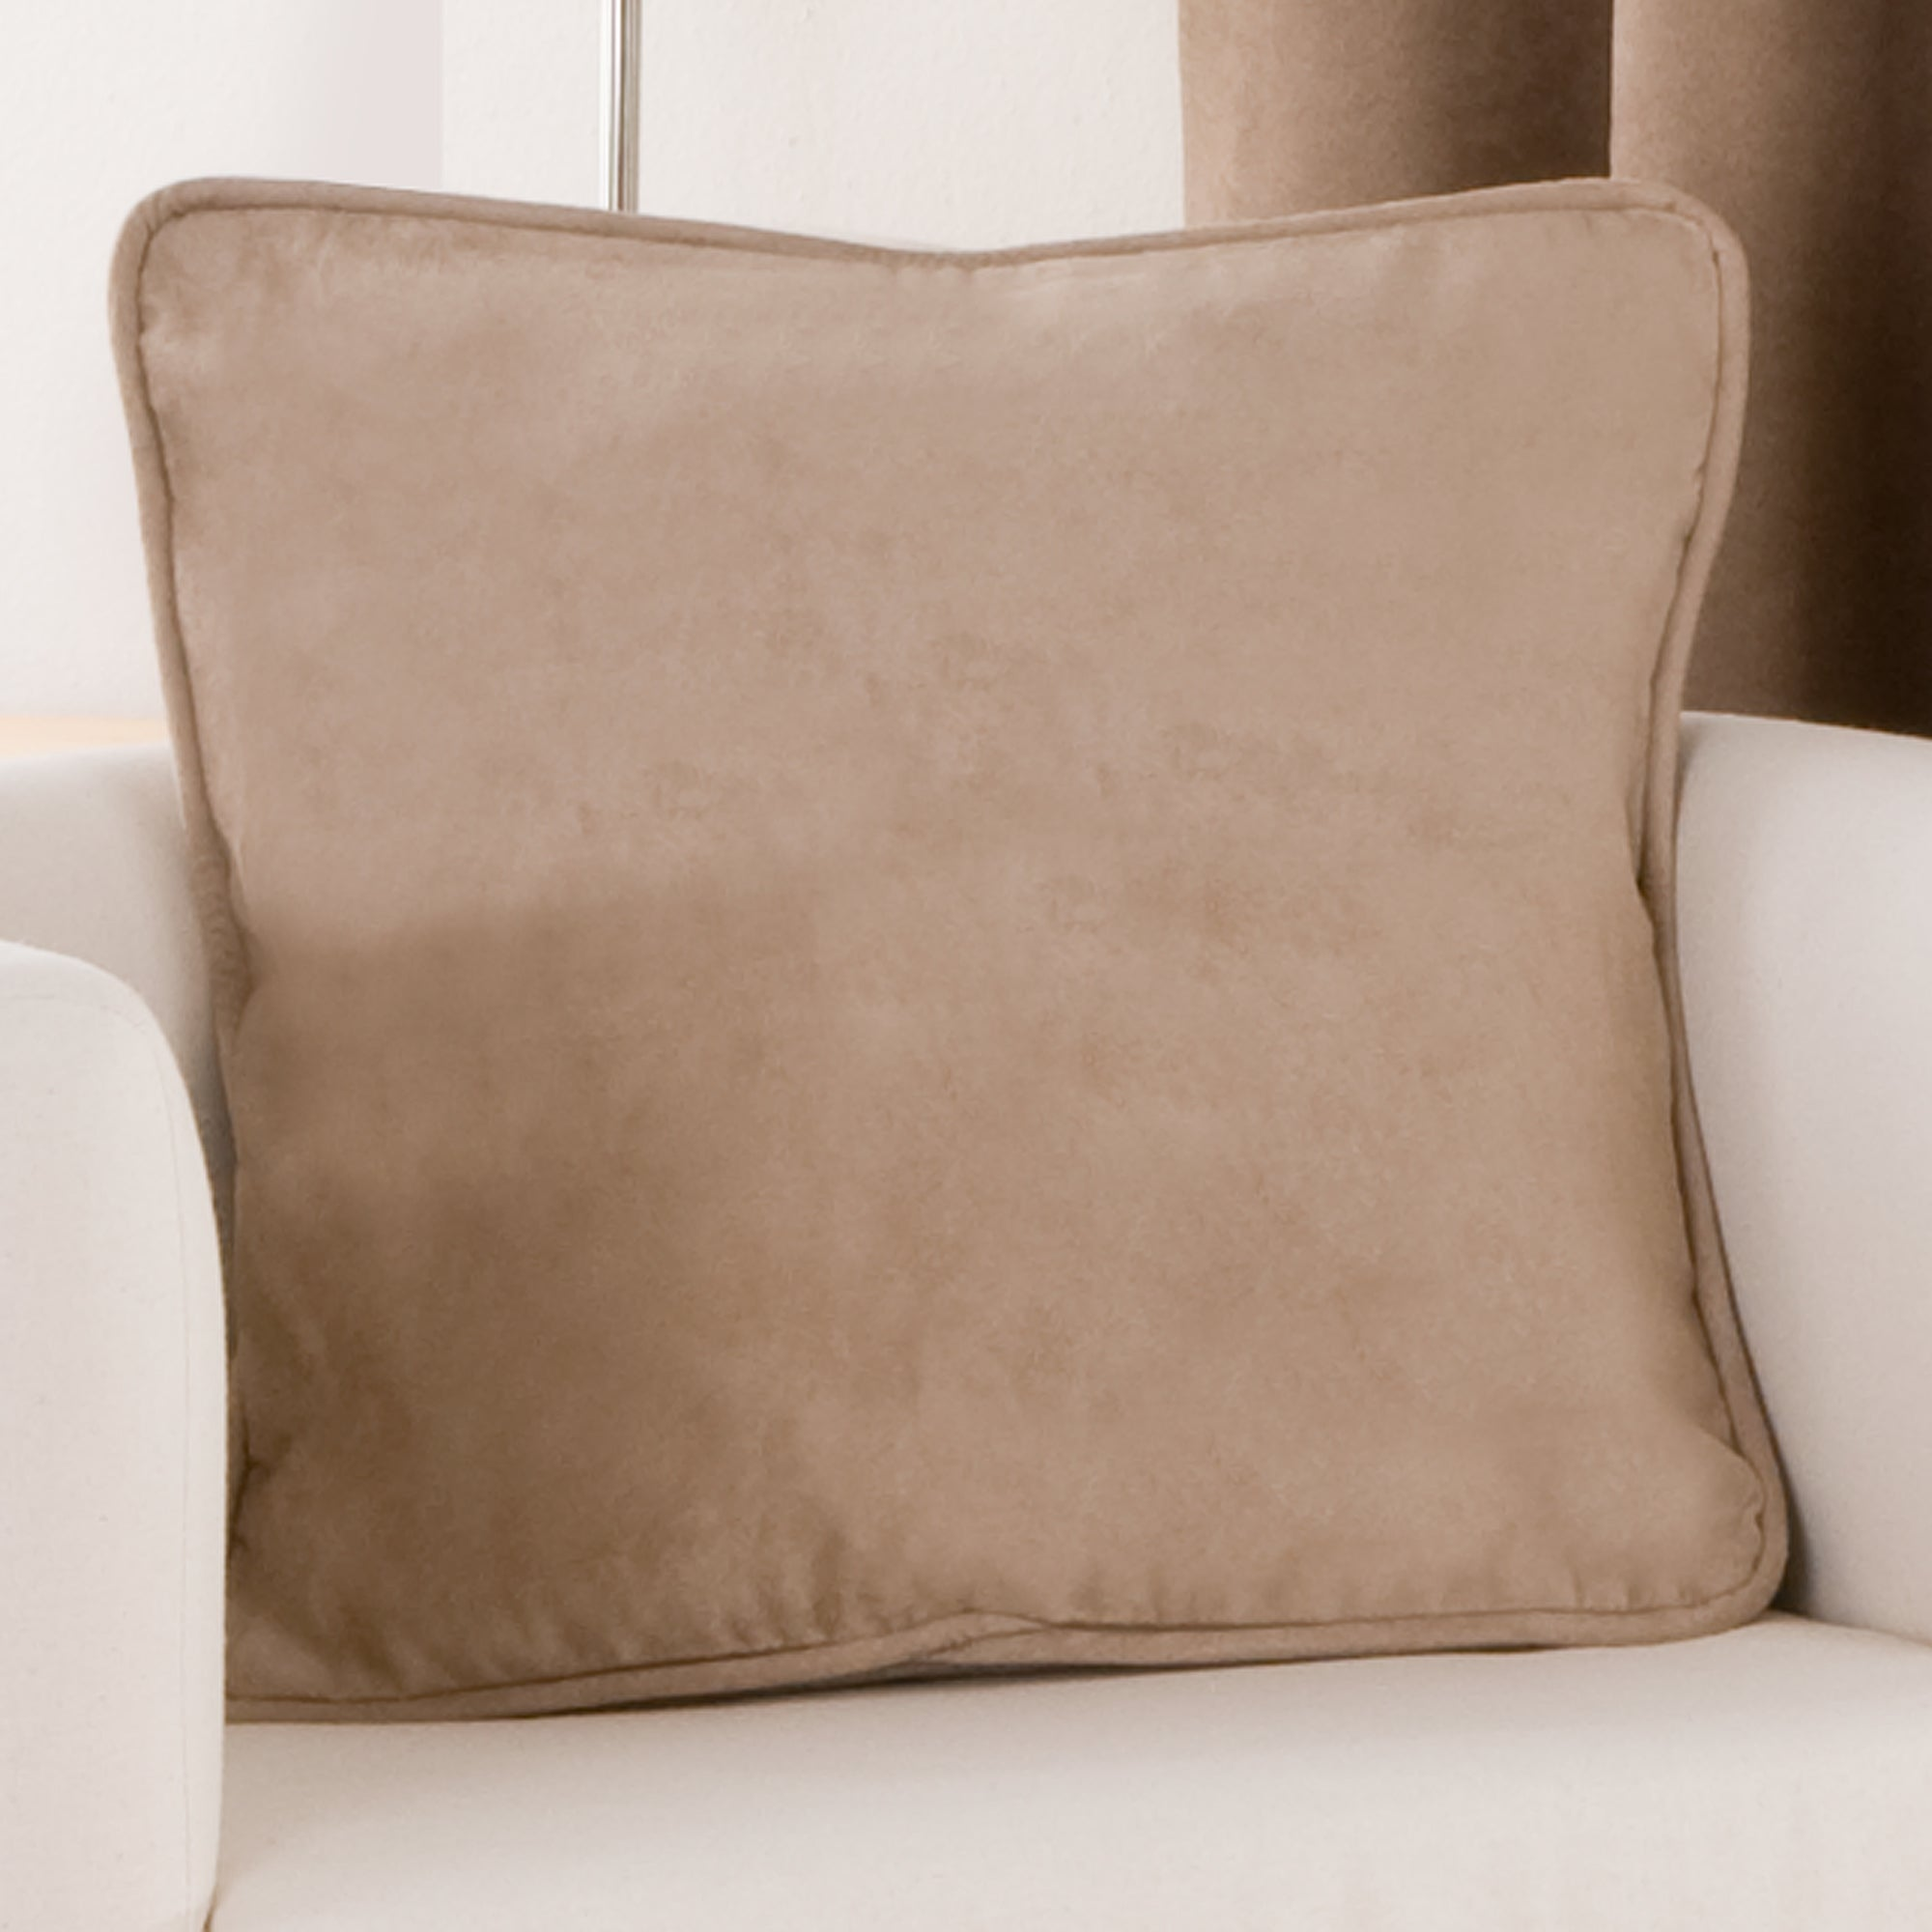 Latte Suede Blackout Cushion